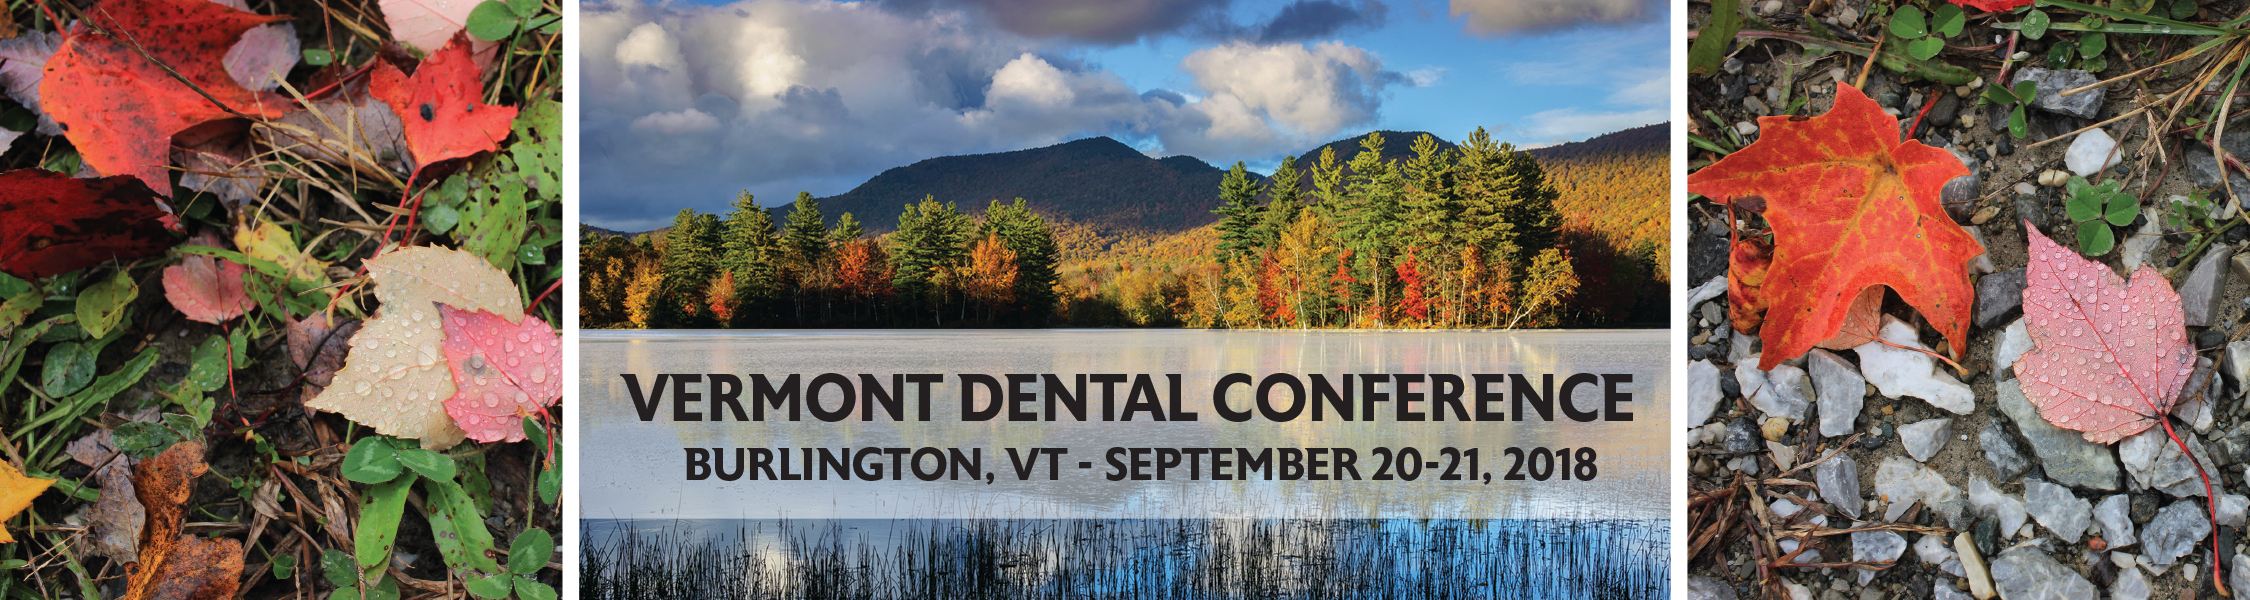 Vermont Dental Conference